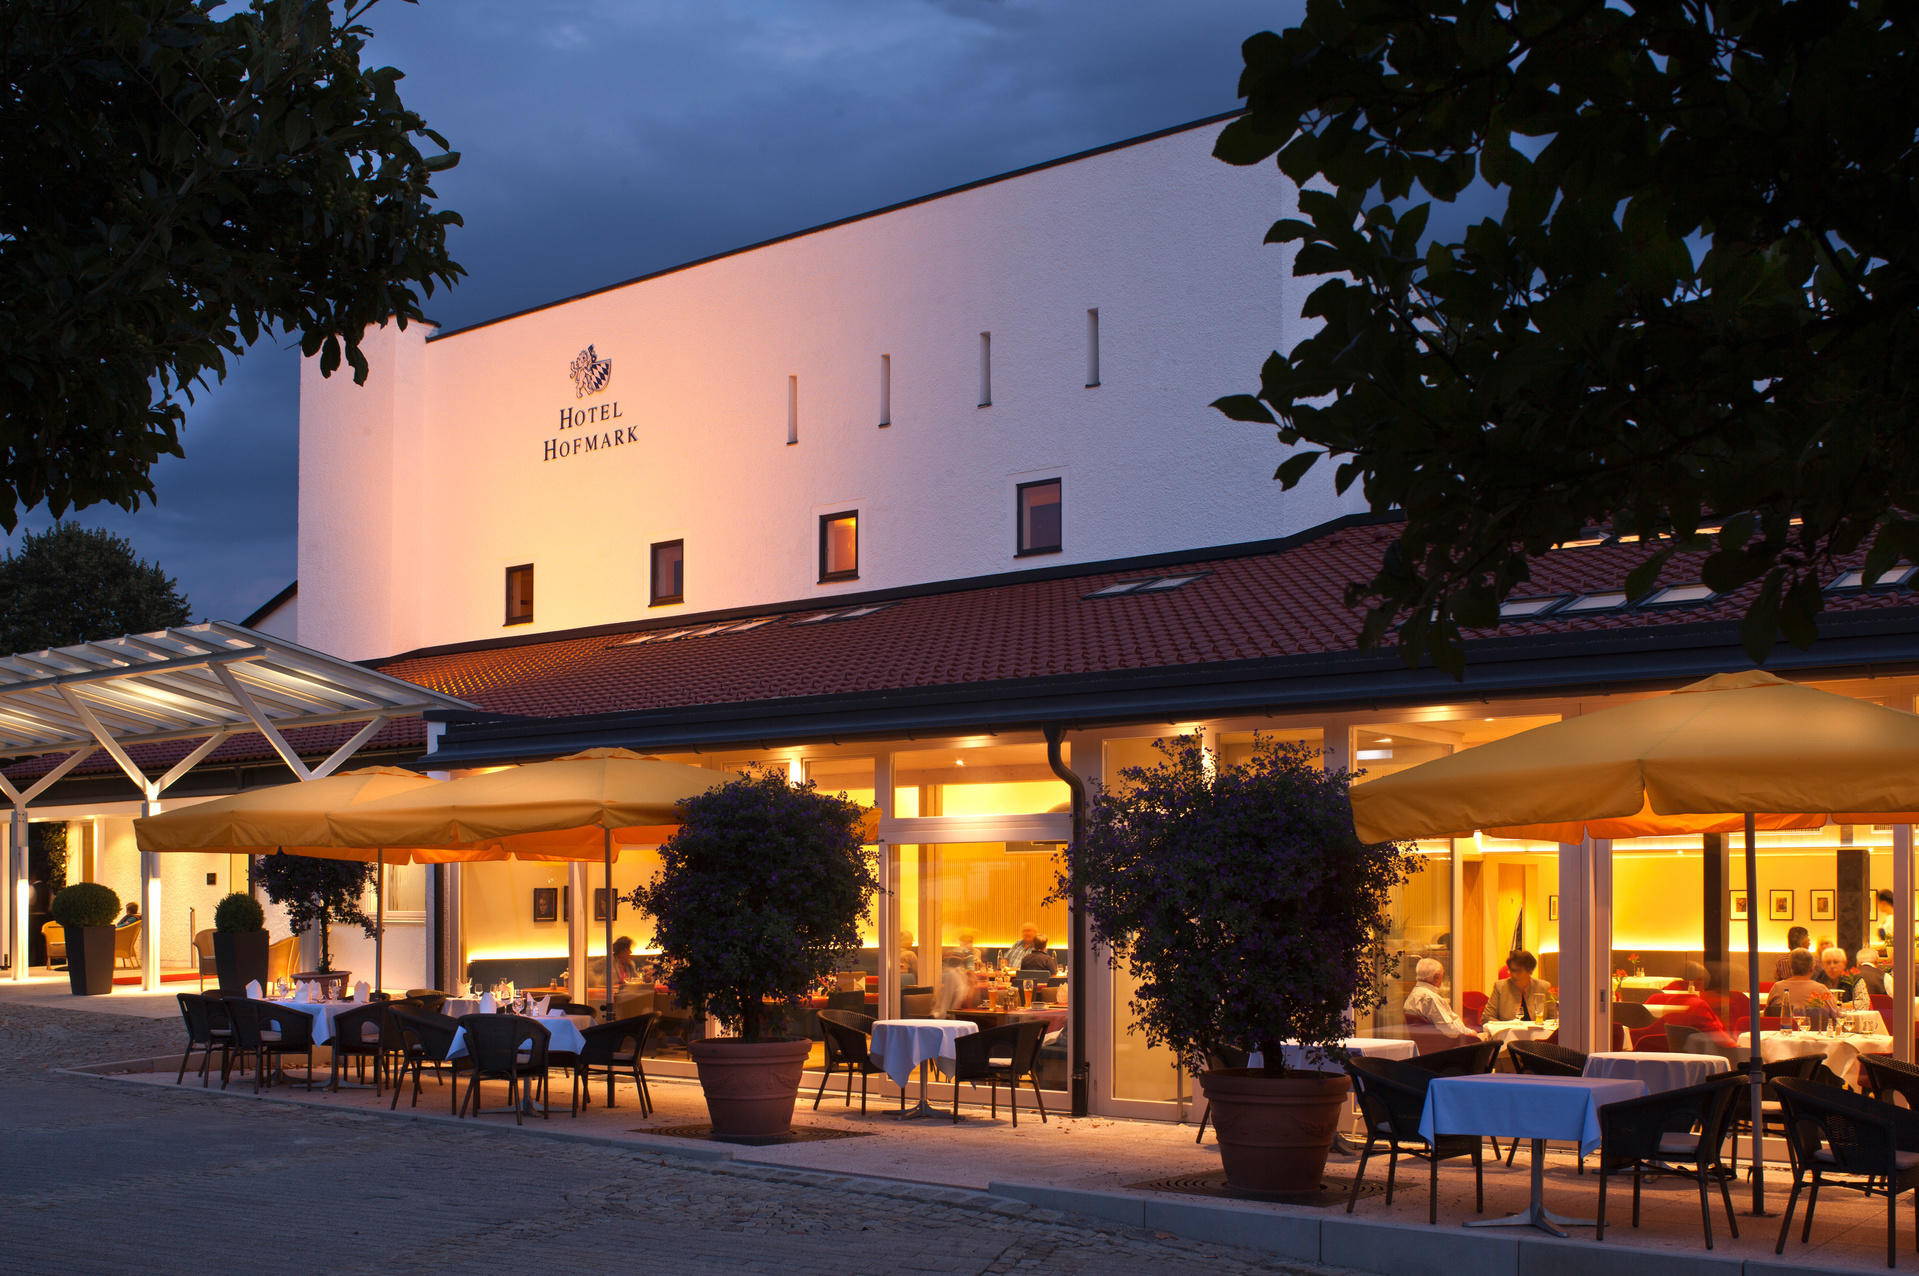 Wellness Bad Birnbach Thermenhotel Hofmark Bad Birnbach Rottal Terme Hotels Bademantelgang